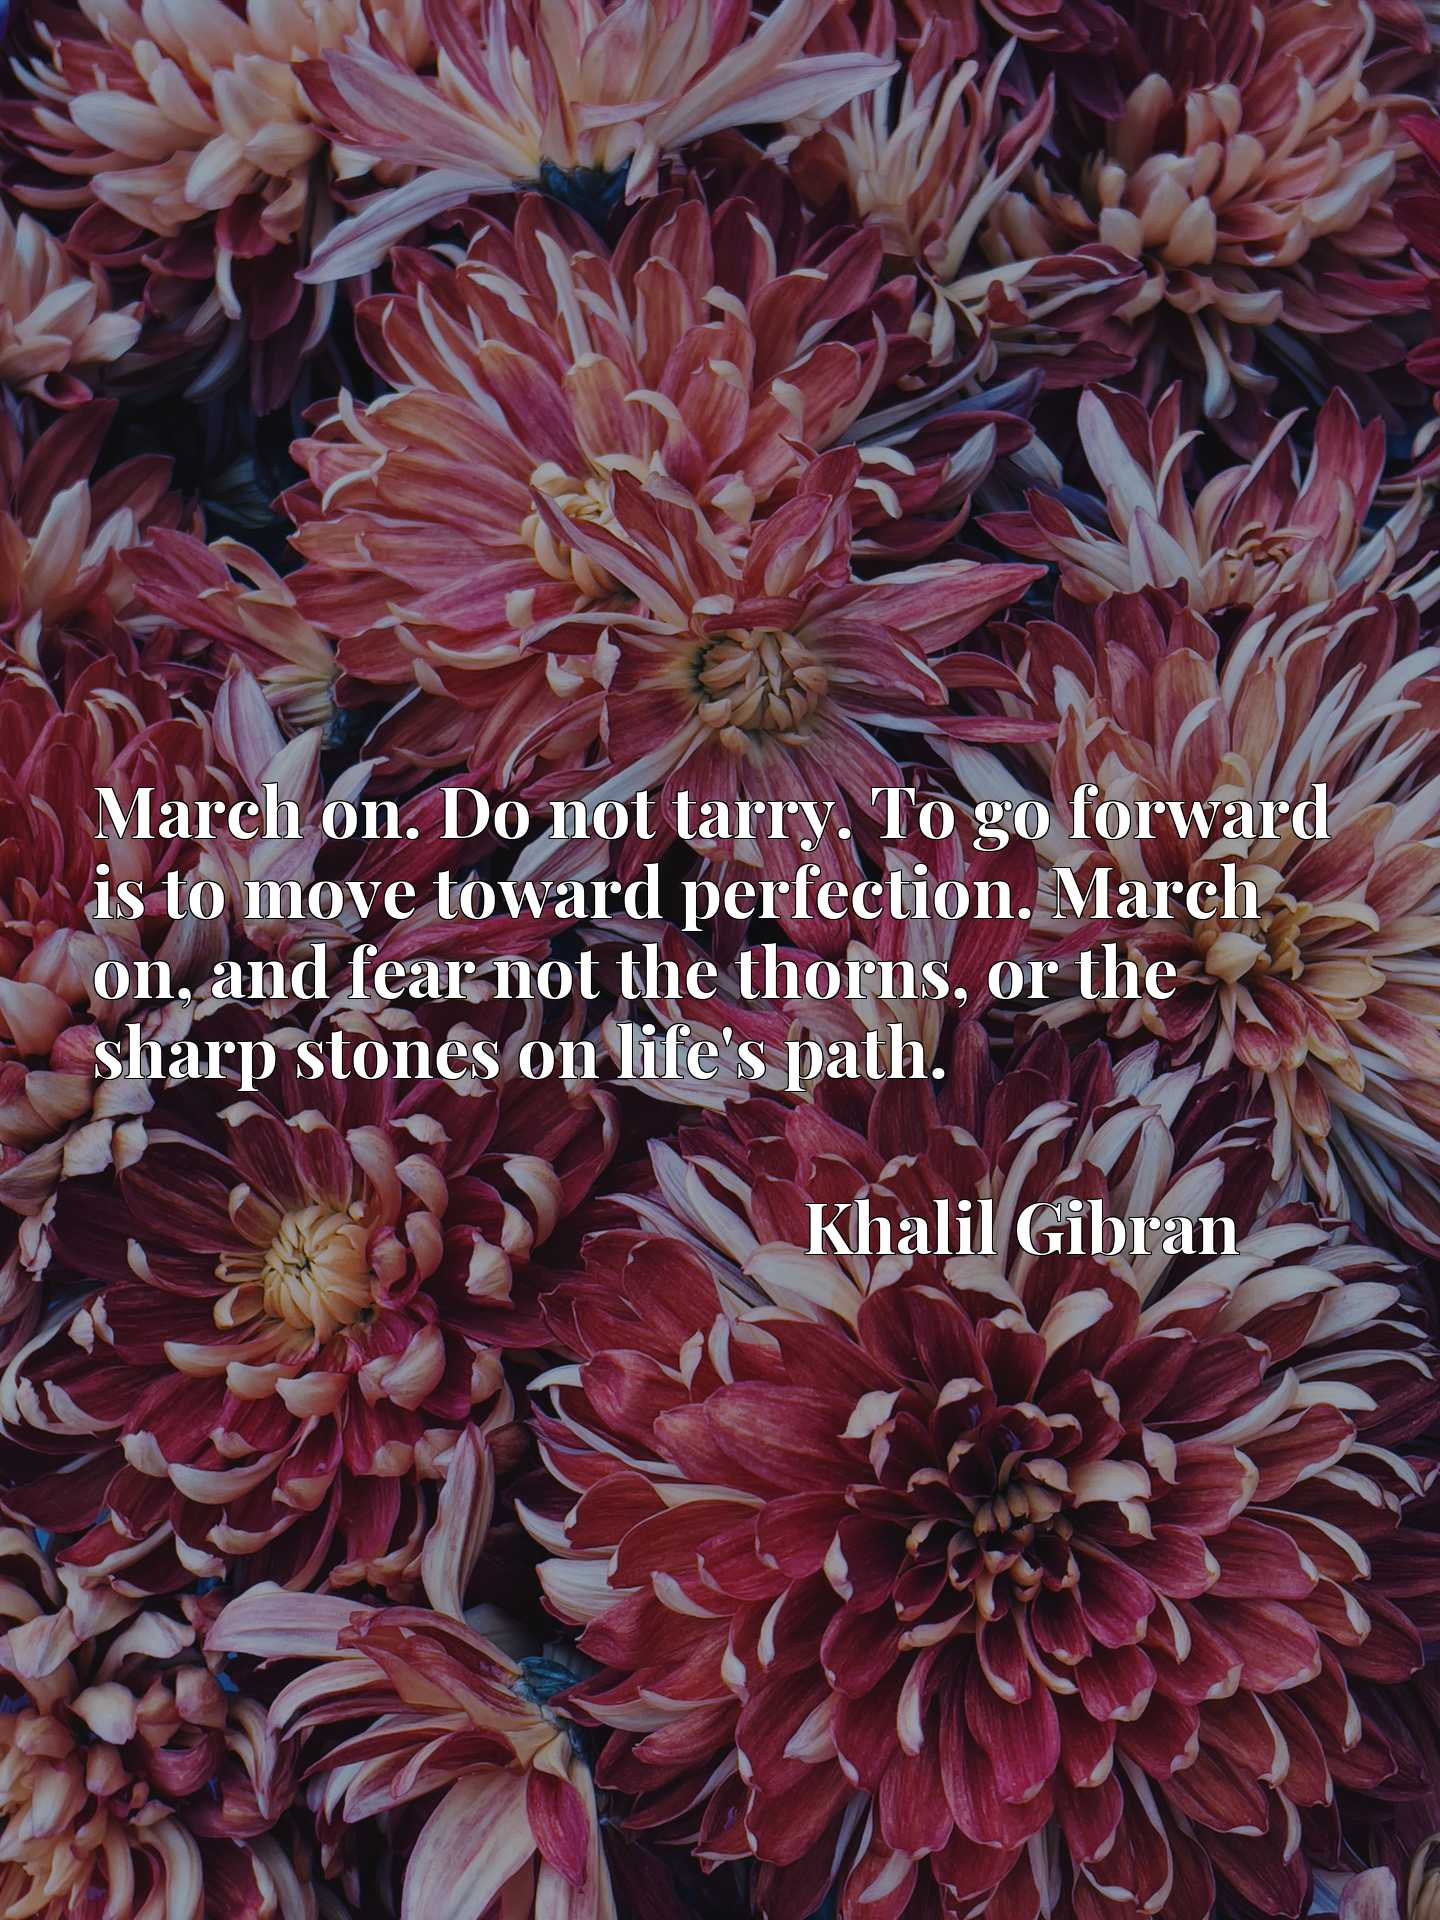 March on. Do not tarry. To go forward is to move toward perfection. March on, and fear not the thorns, or the sharp stones on life's path.